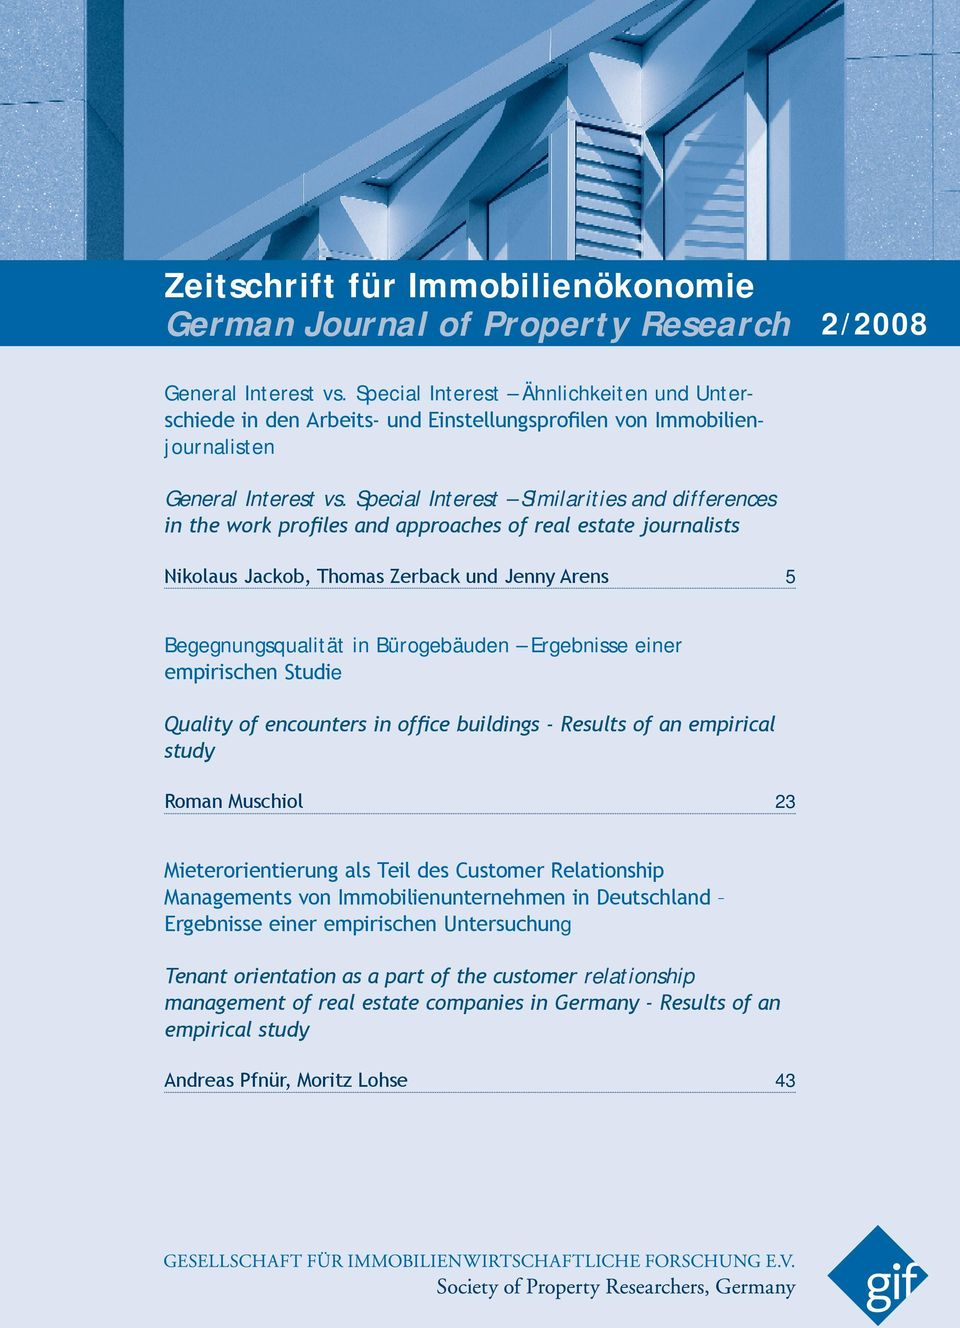 Special Interest Similarities and differences in the work profiles and approaches of real estate journalists Nikolaus Jackob, Thomas Zerback und Jenny Arens 5 Begegnungsqualität in Bürogebäuden